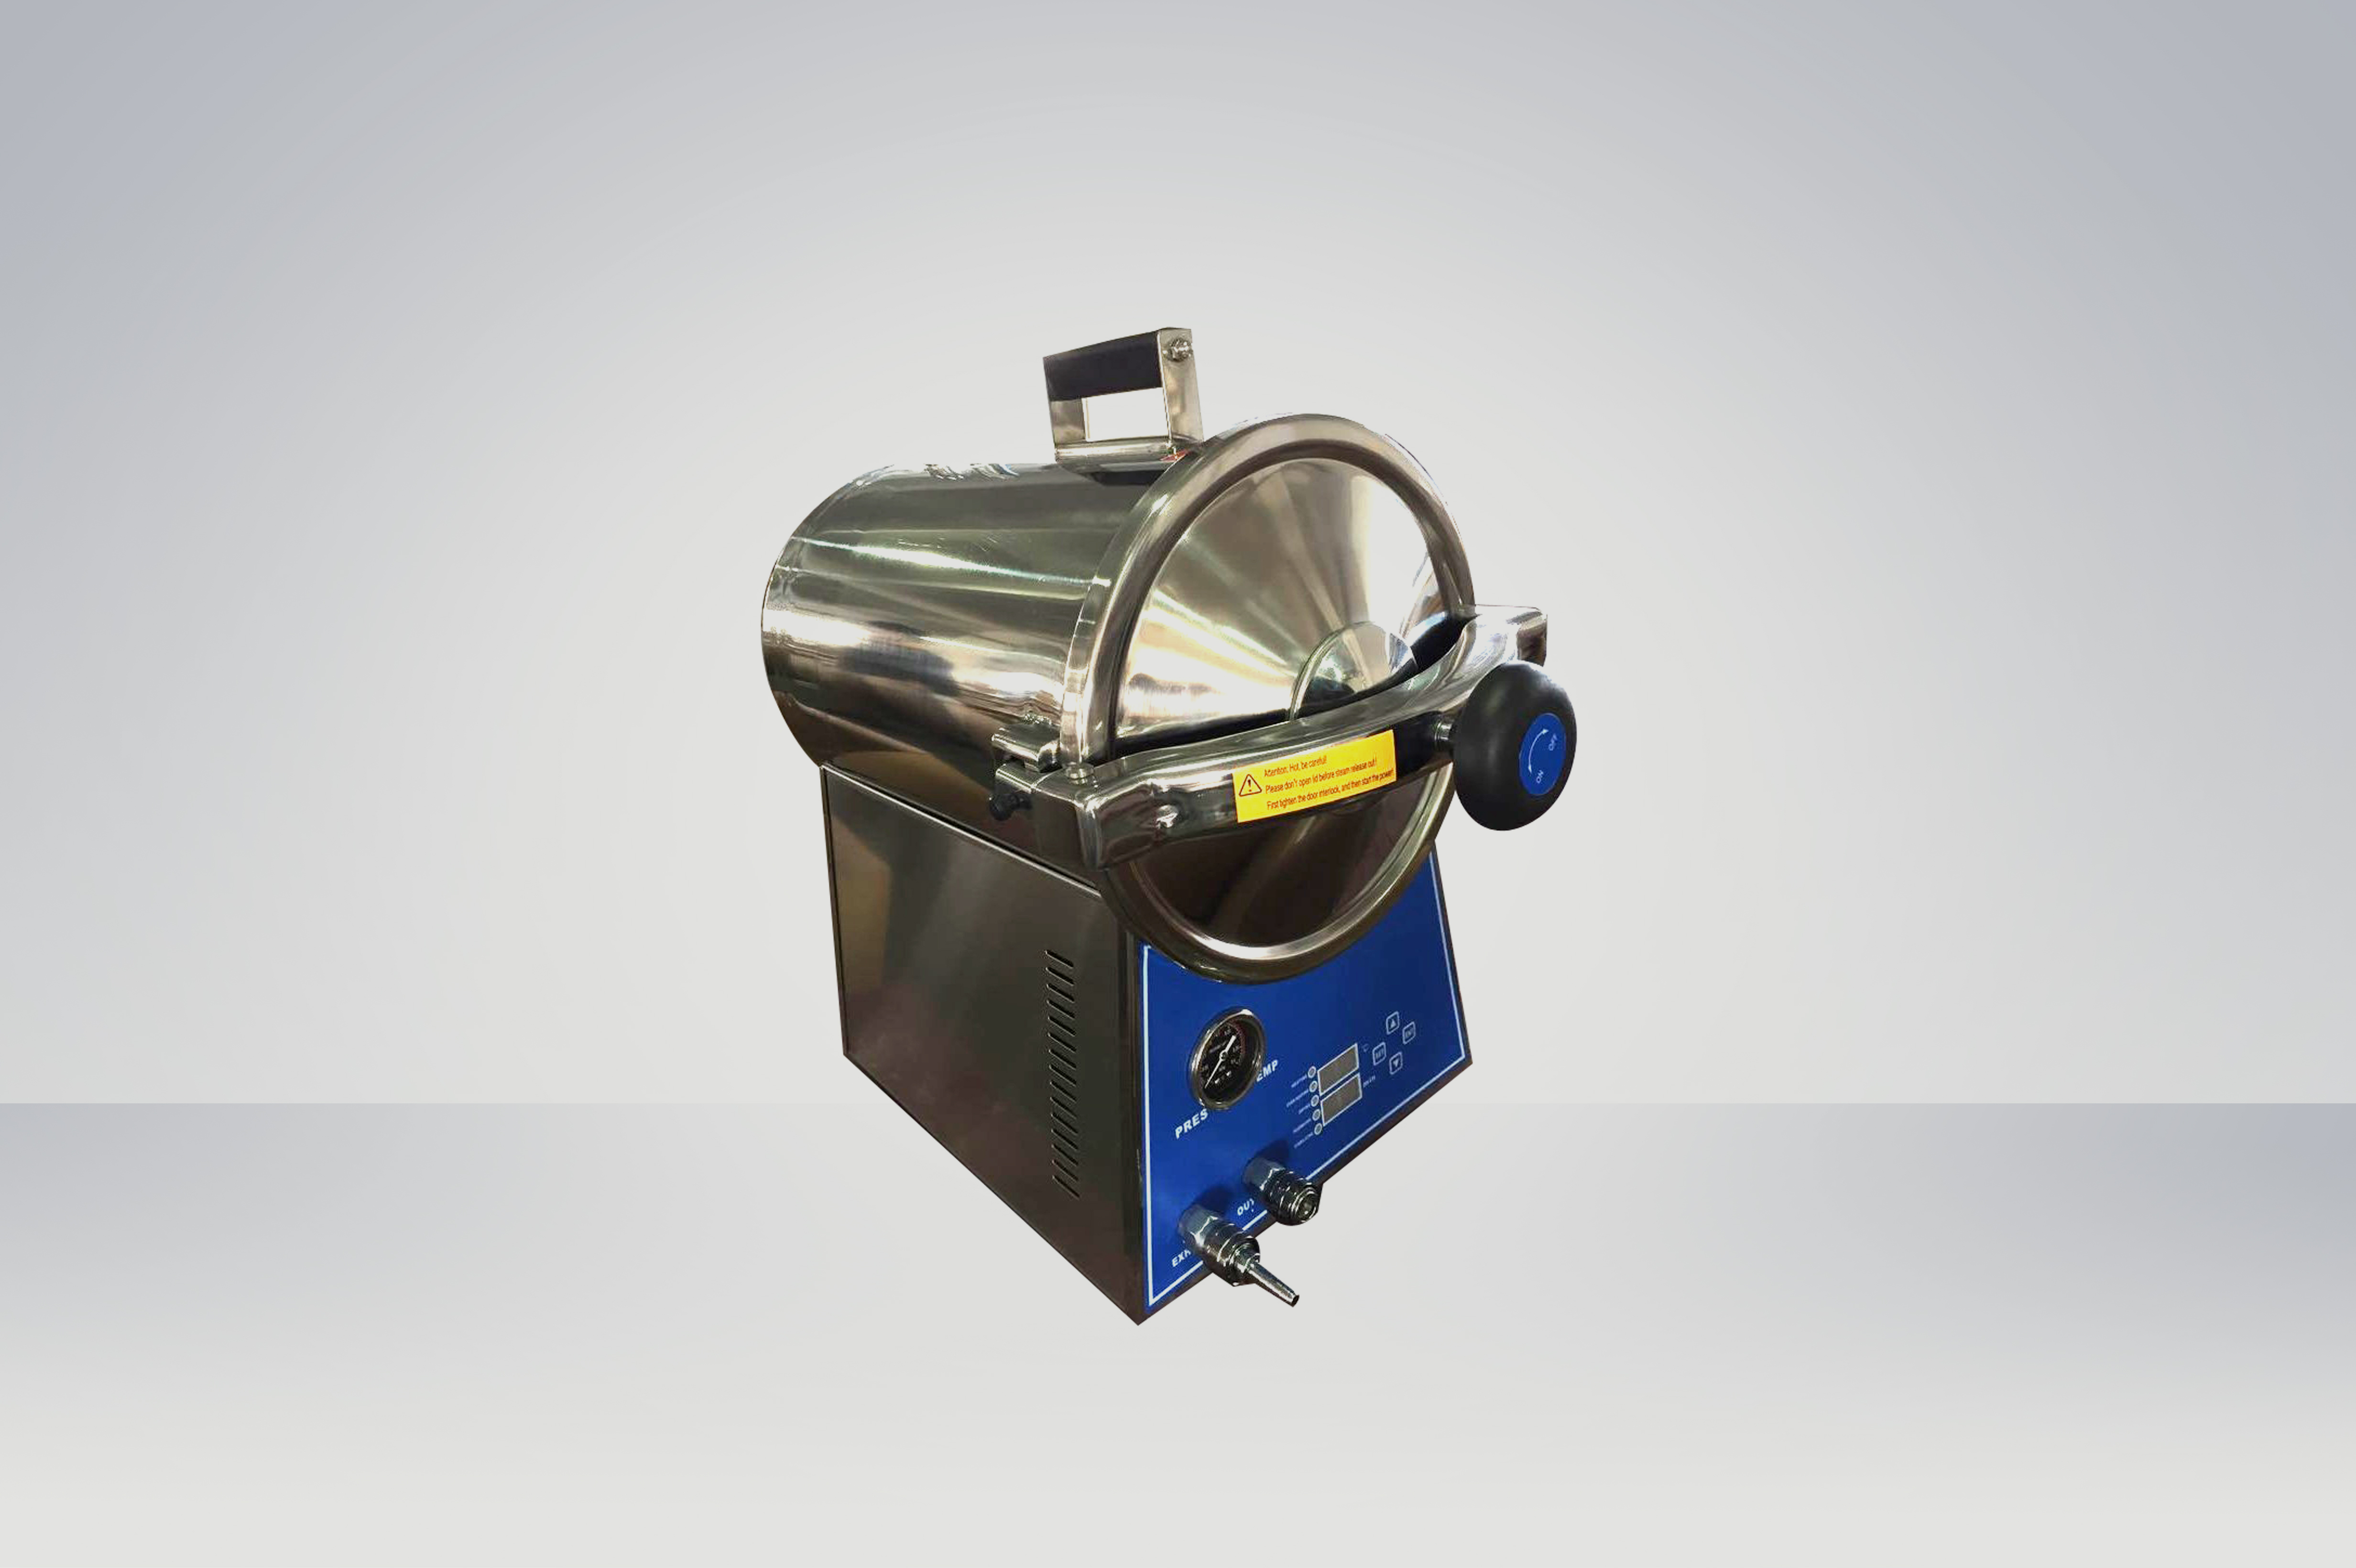 Table top Steam Sterilizer with dryer